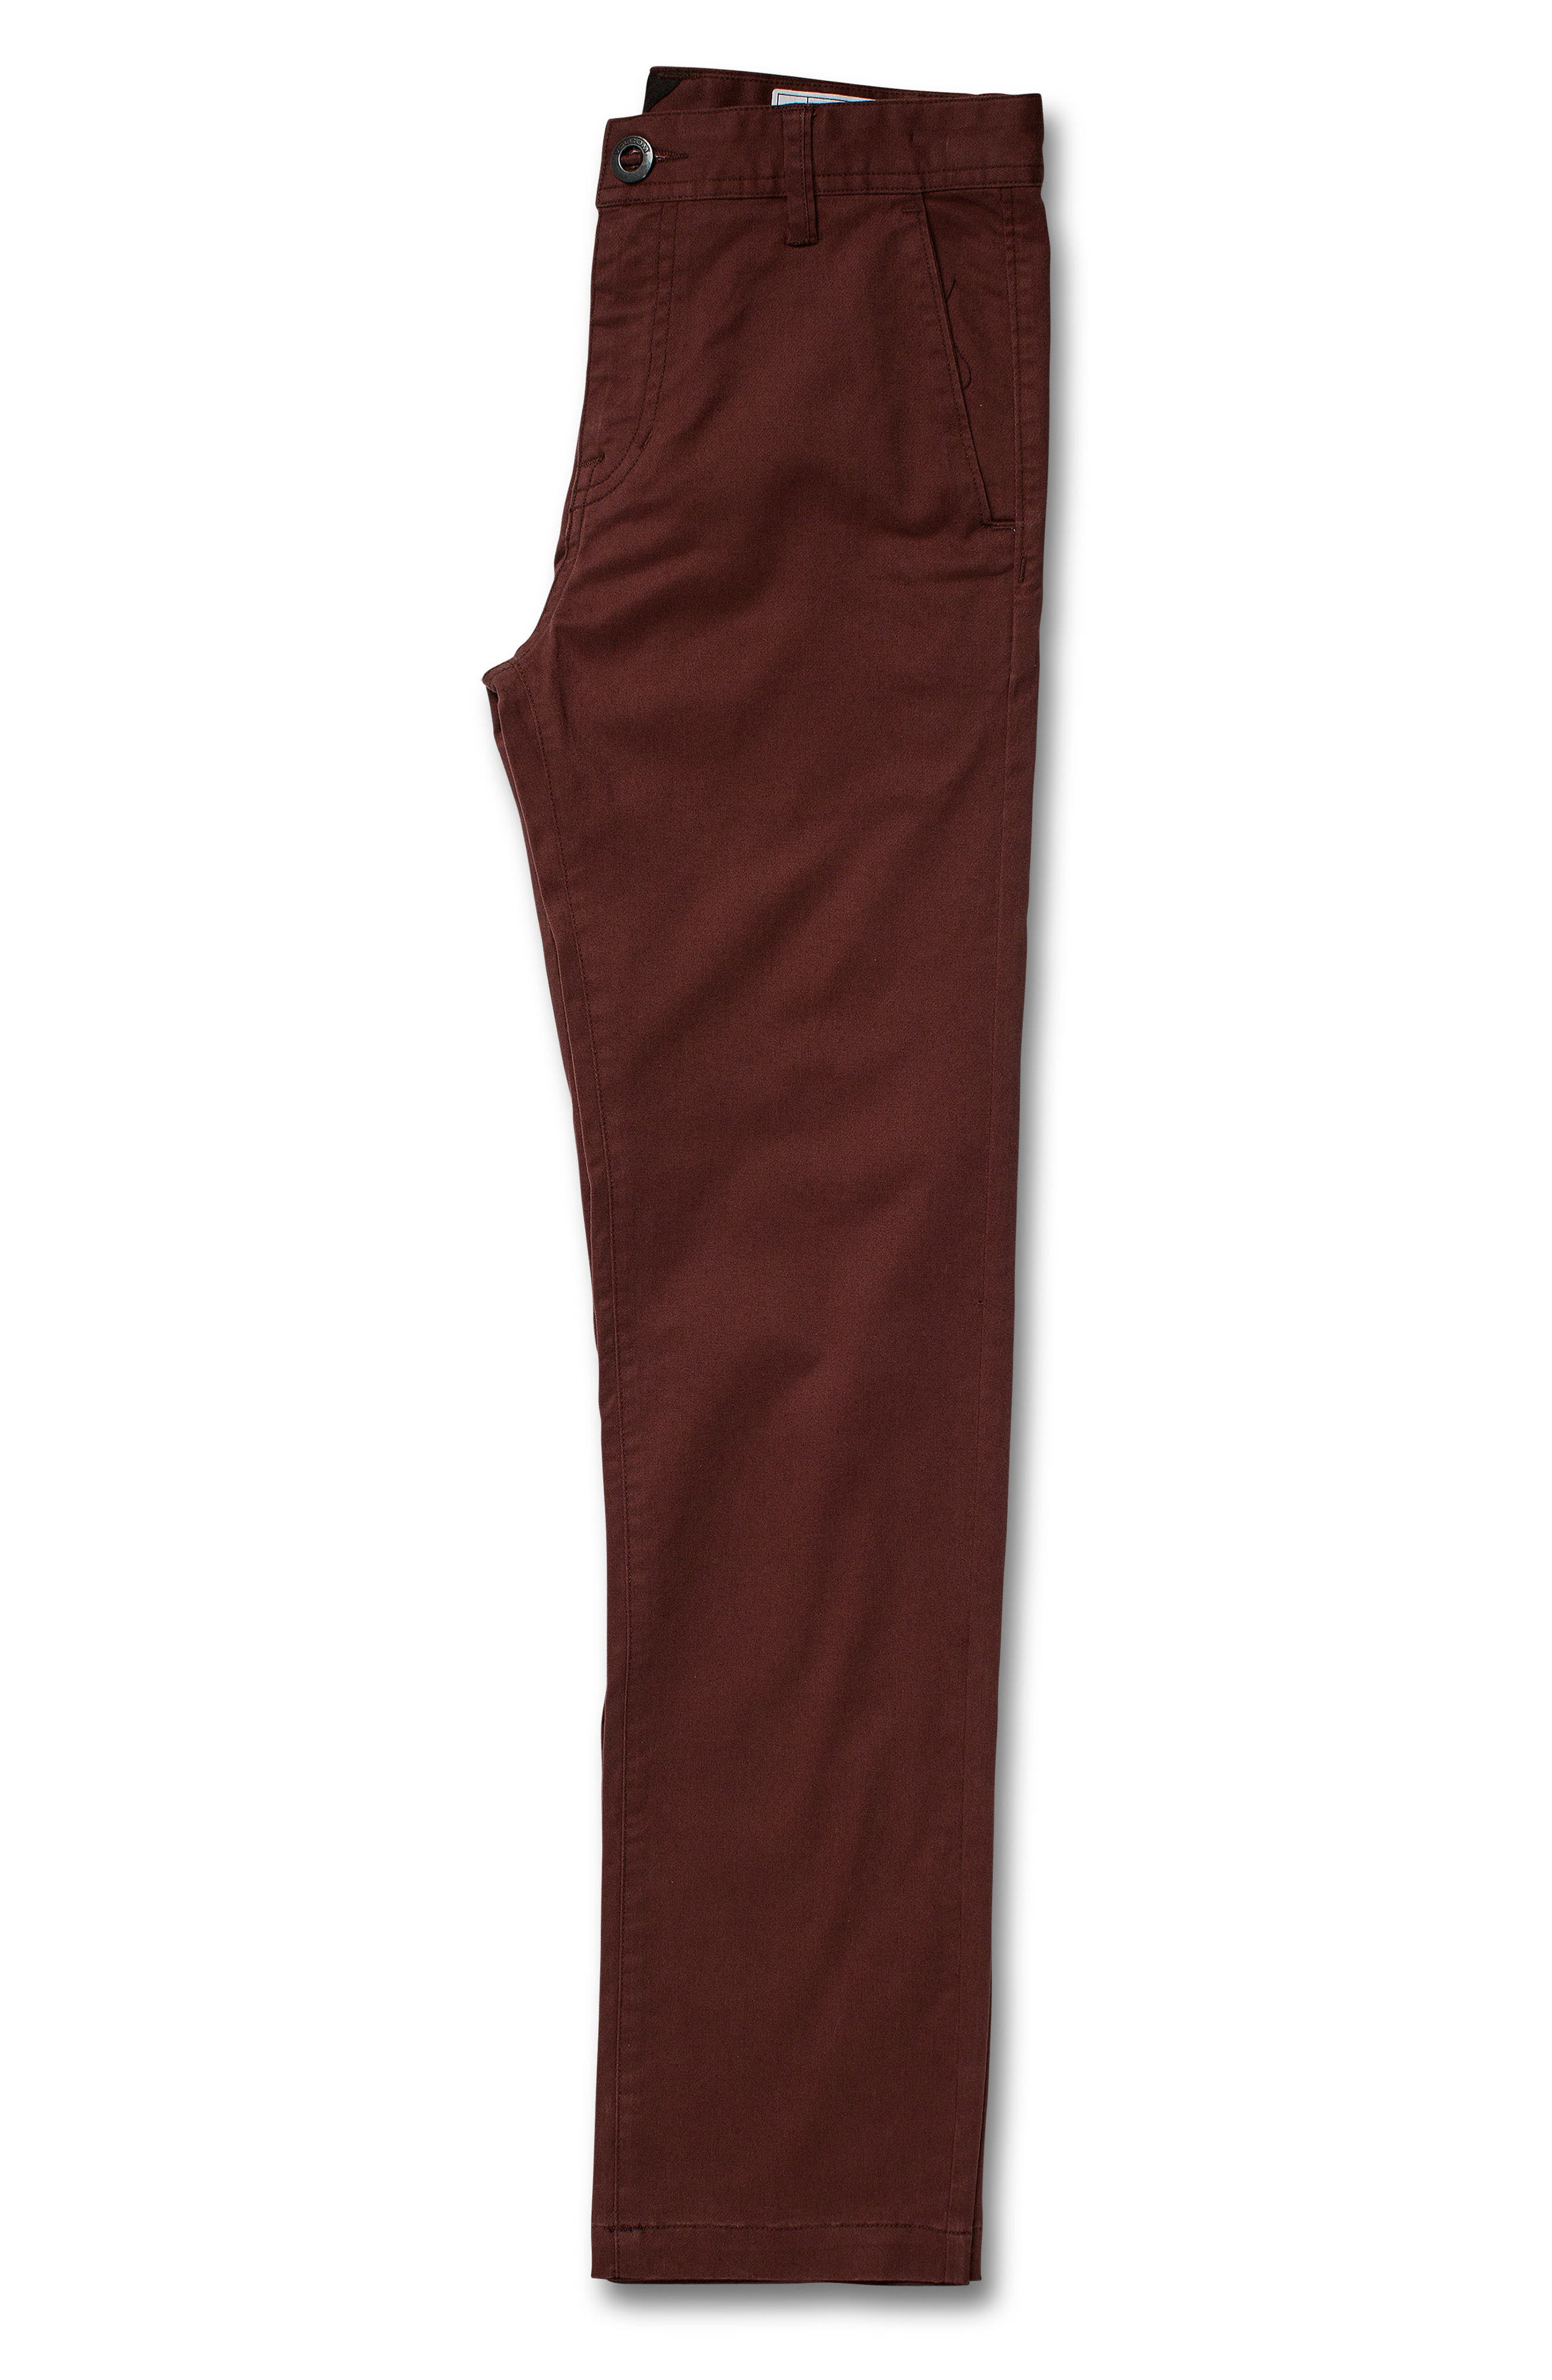 VOLCOM, Slim Fit Stretch Chinos, Alternate thumbnail 3, color, BROWN